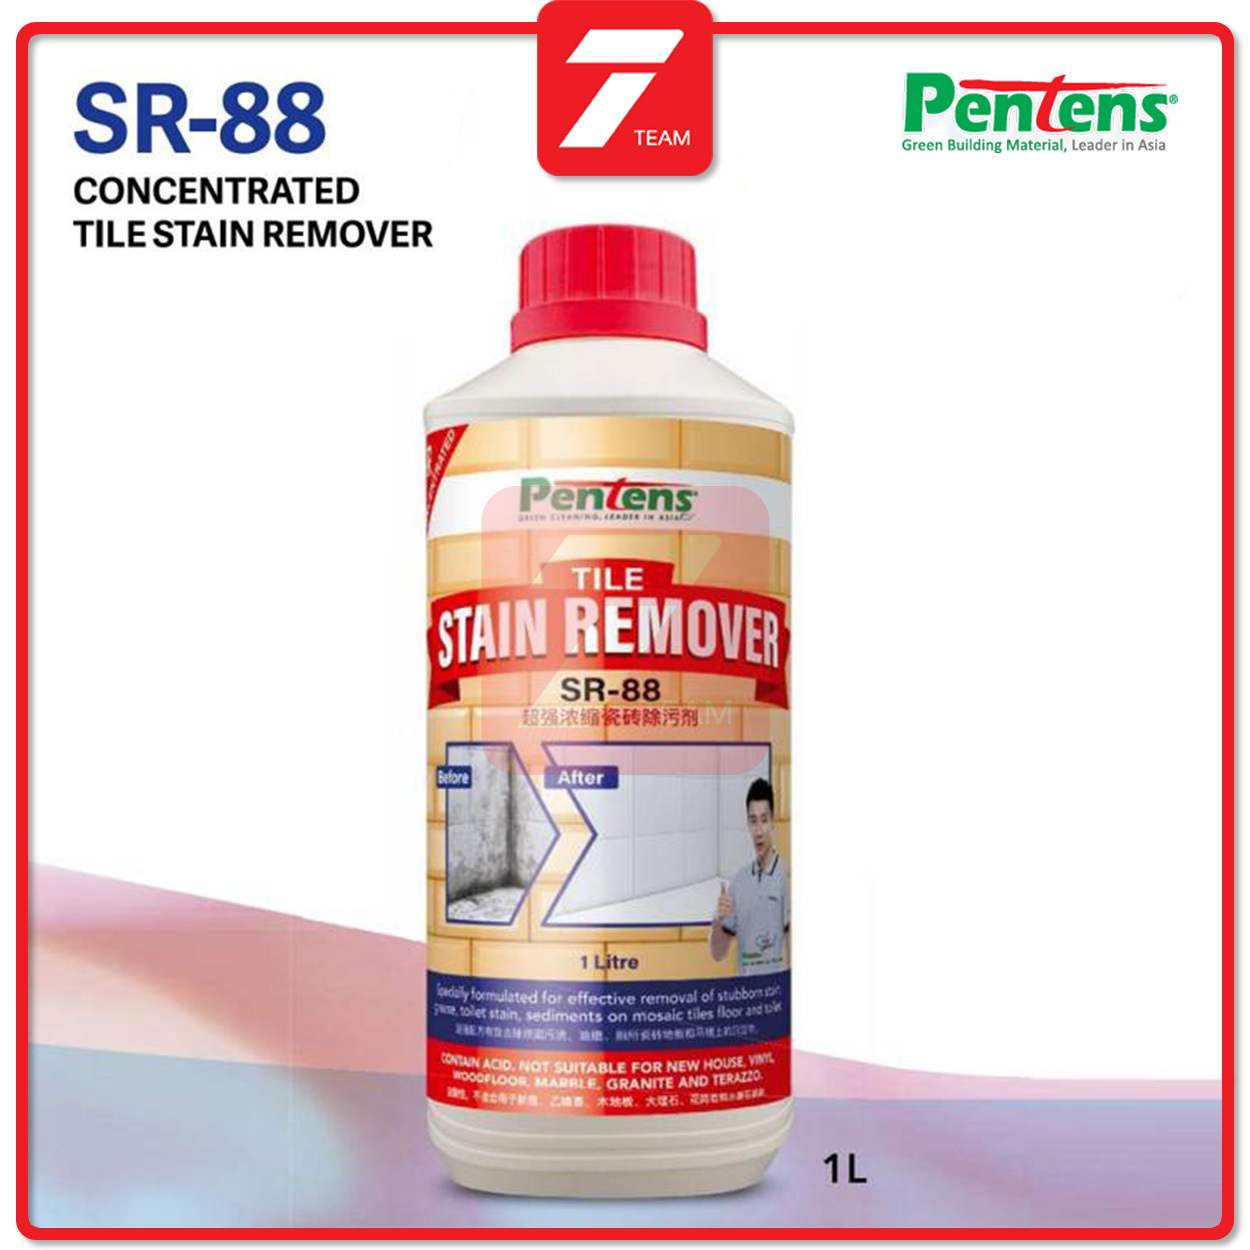 pentens sr 88 concentrated tile stain remover 1l